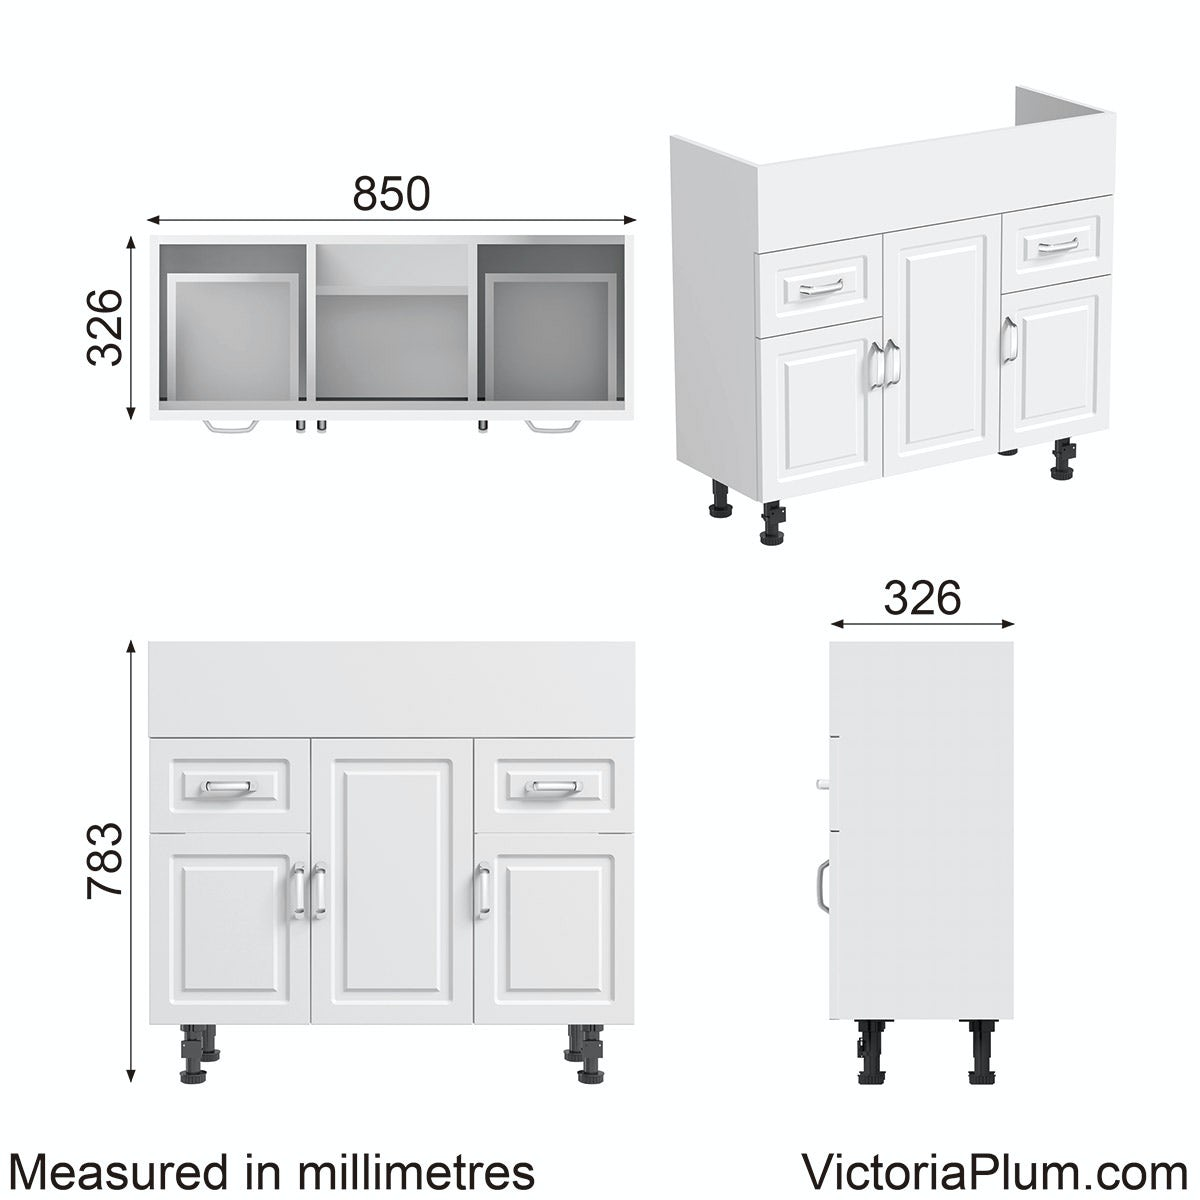 Dimensions for Florence white unit 850mm